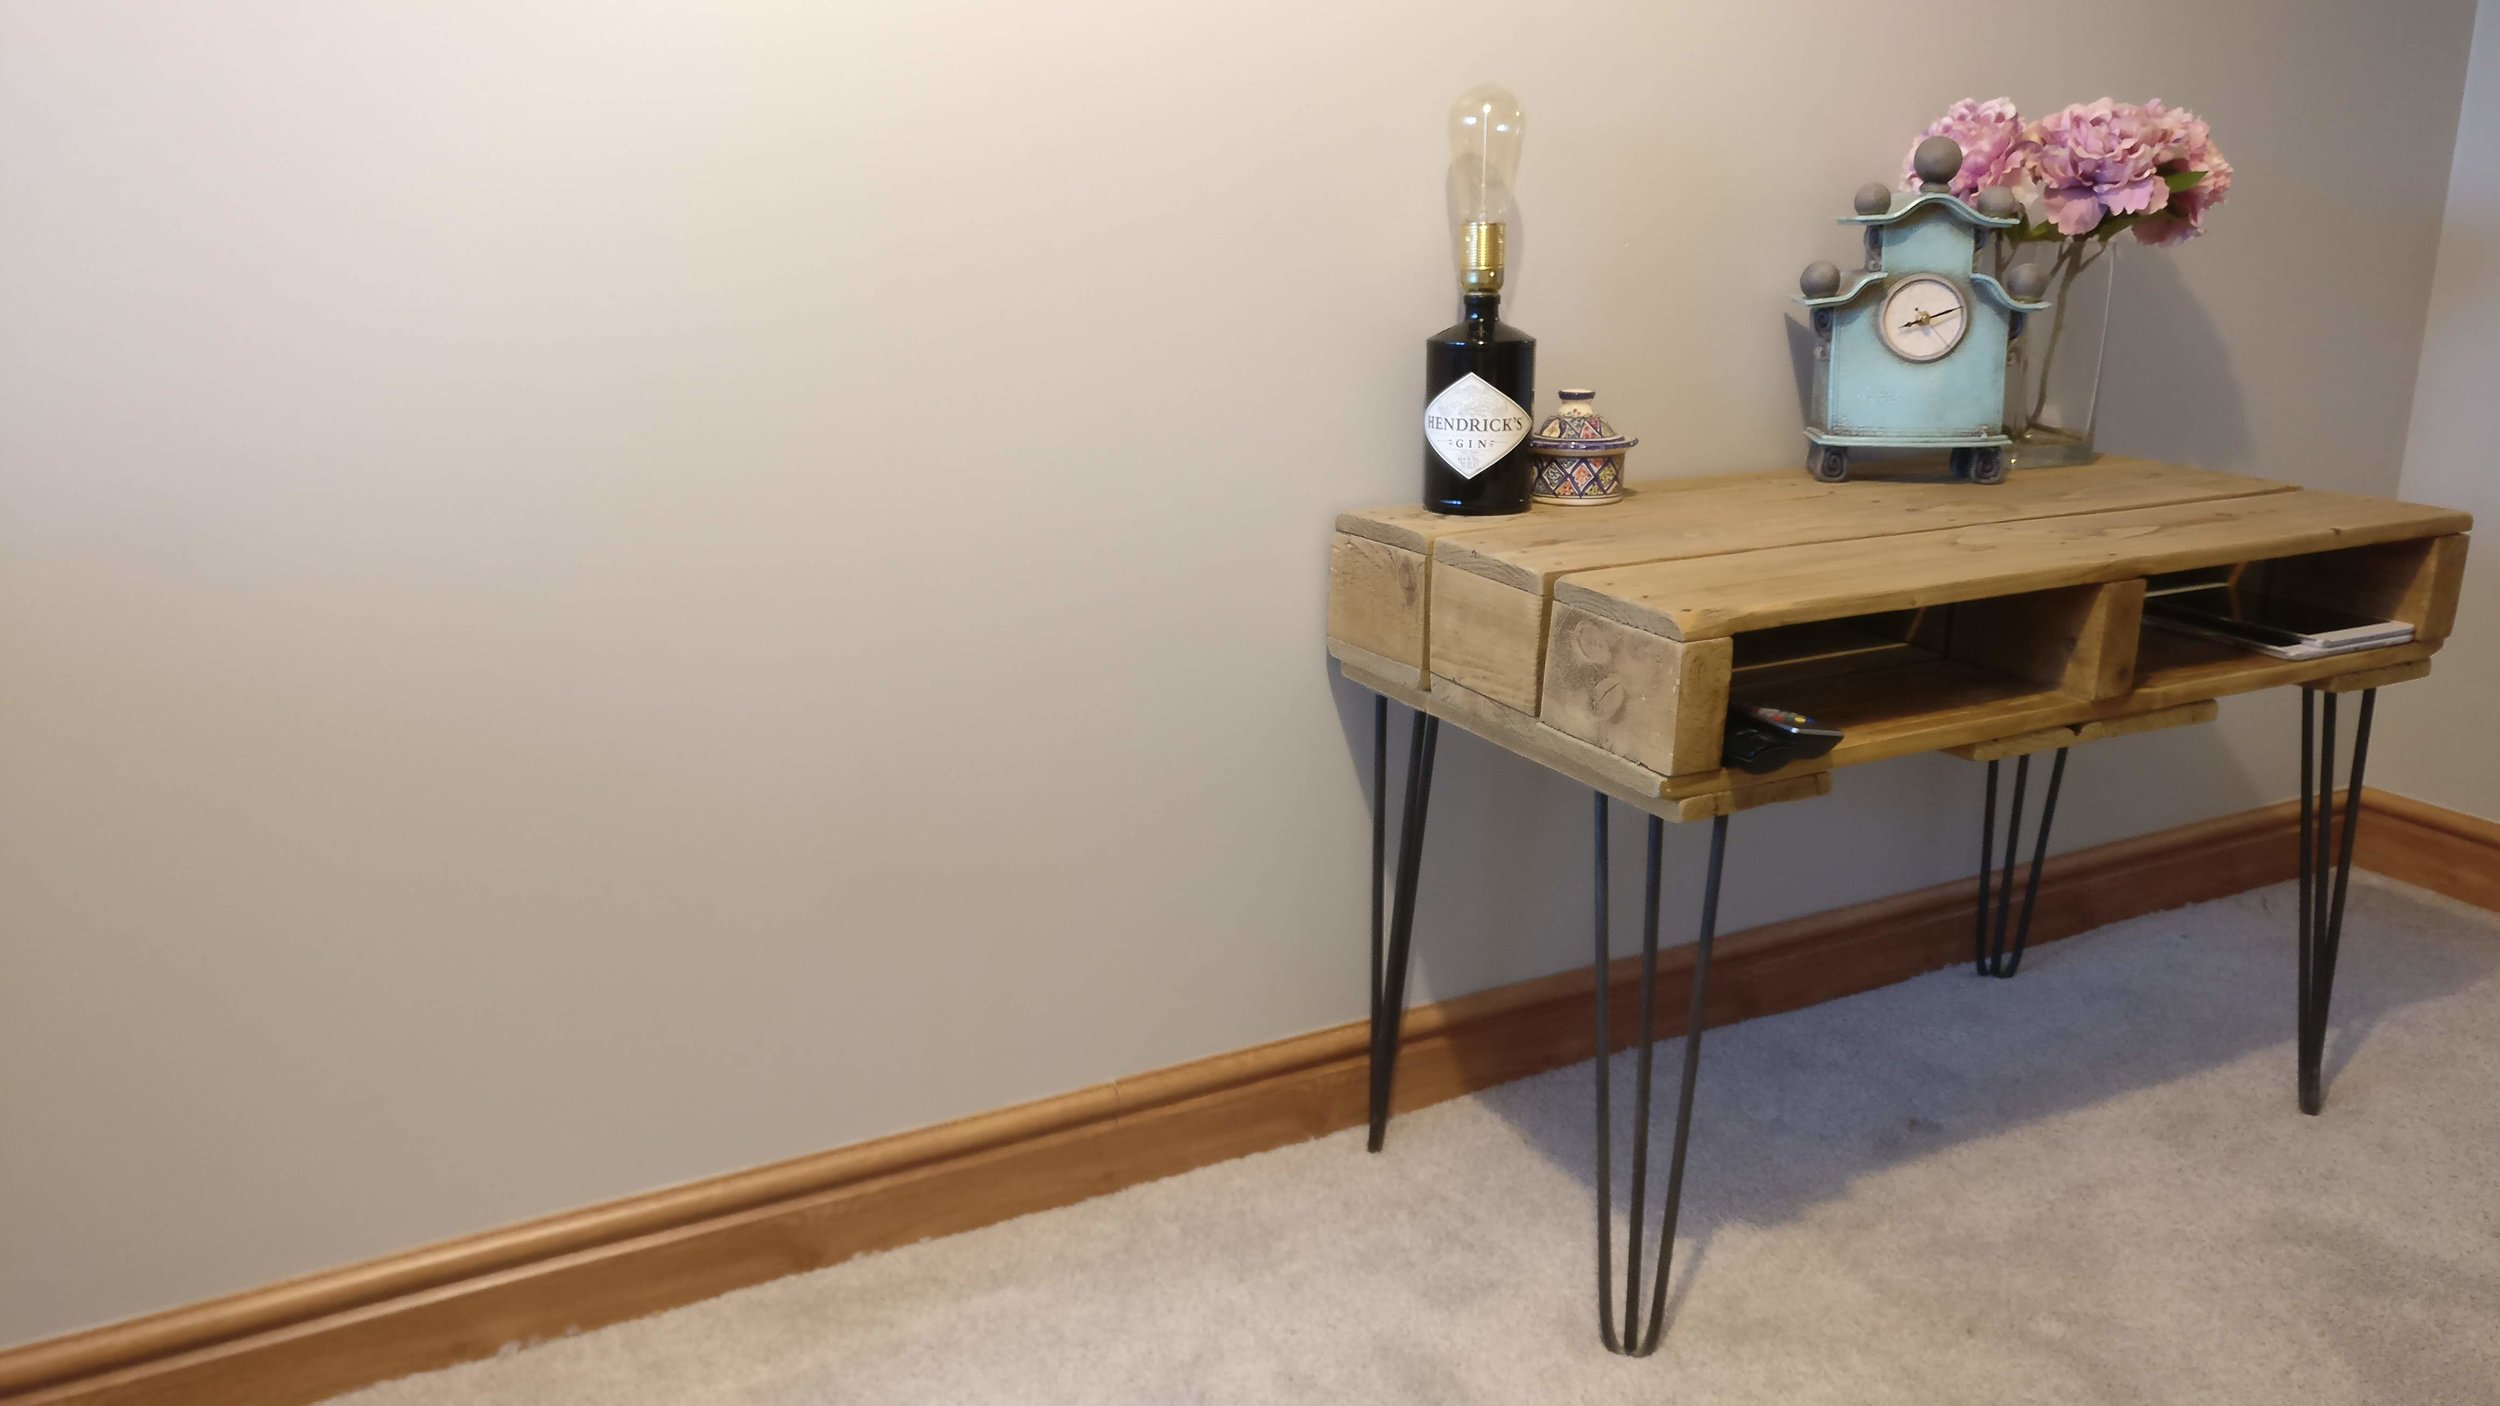 Pallet table with hairpin legs and Hendricks Gin lamp